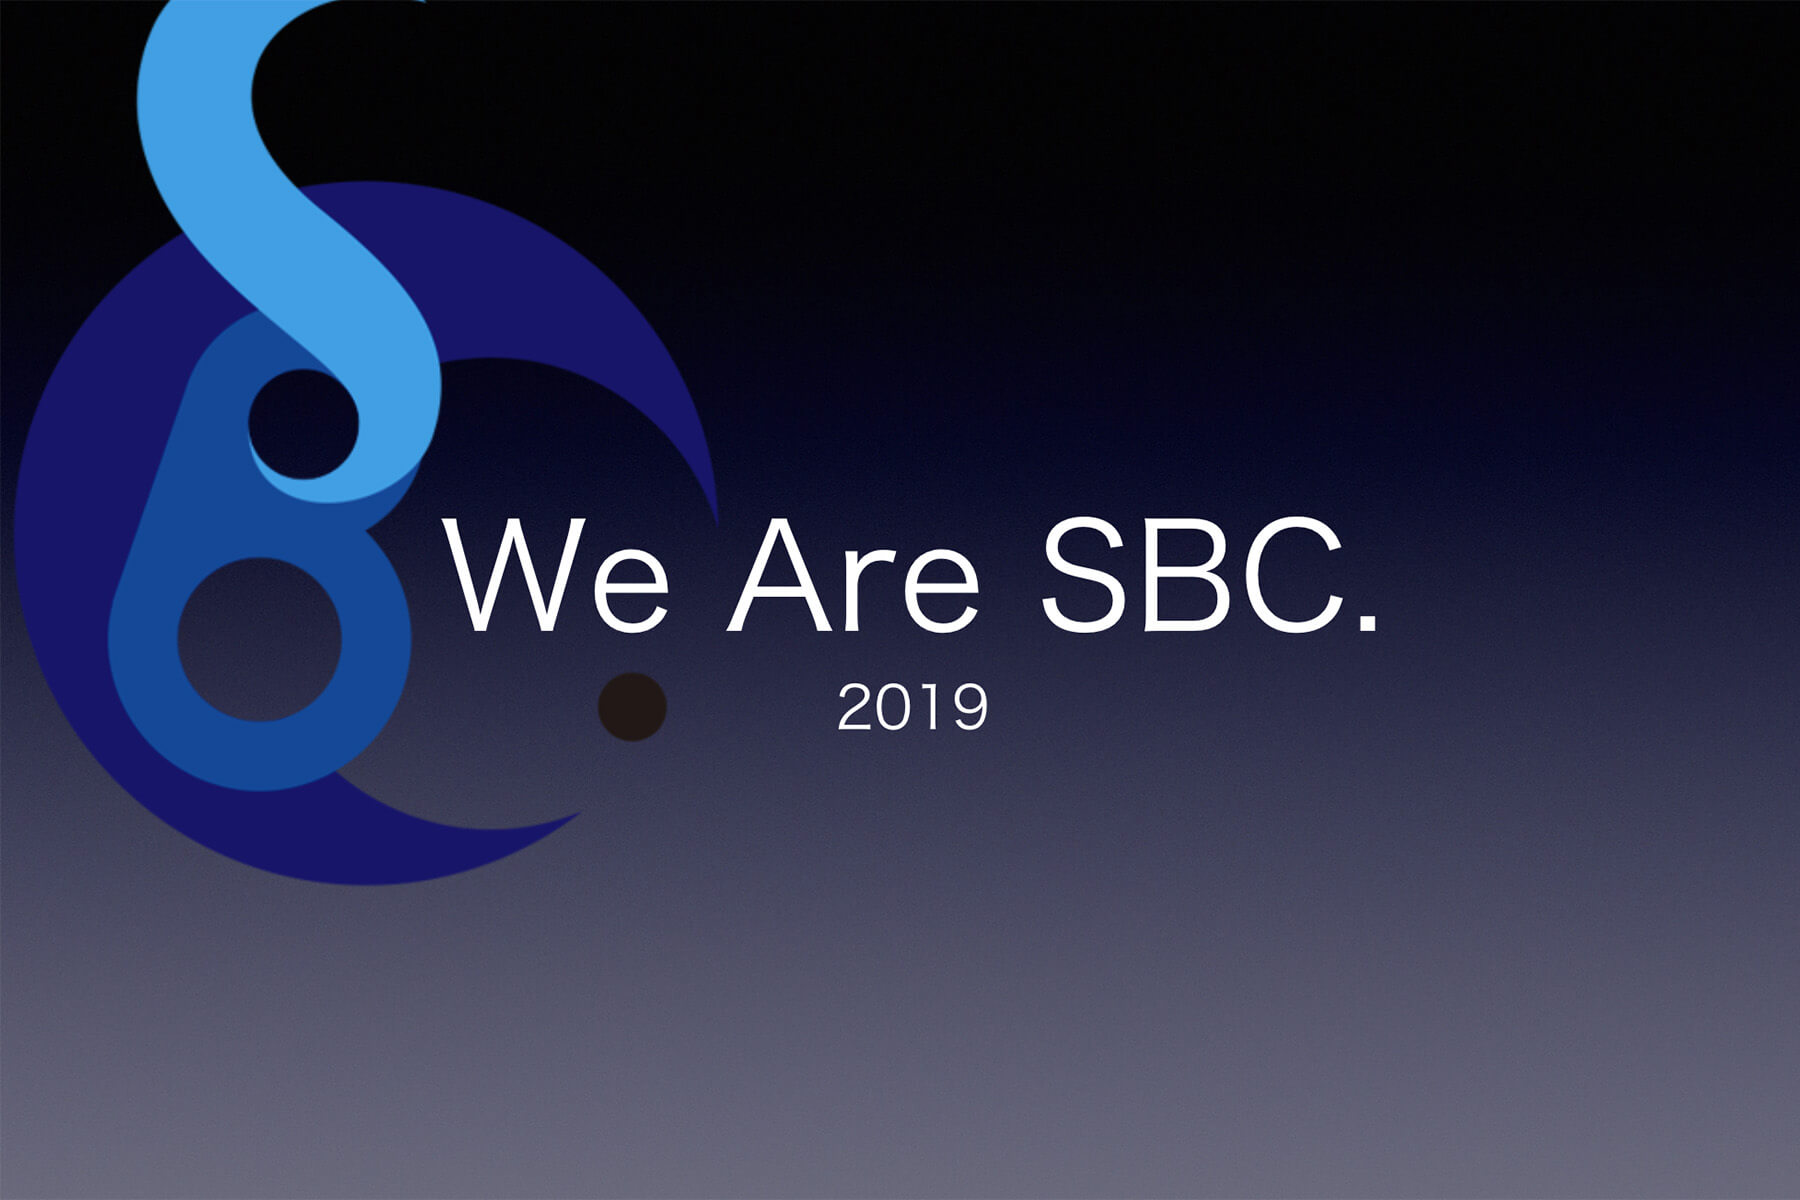 We Are SBC.